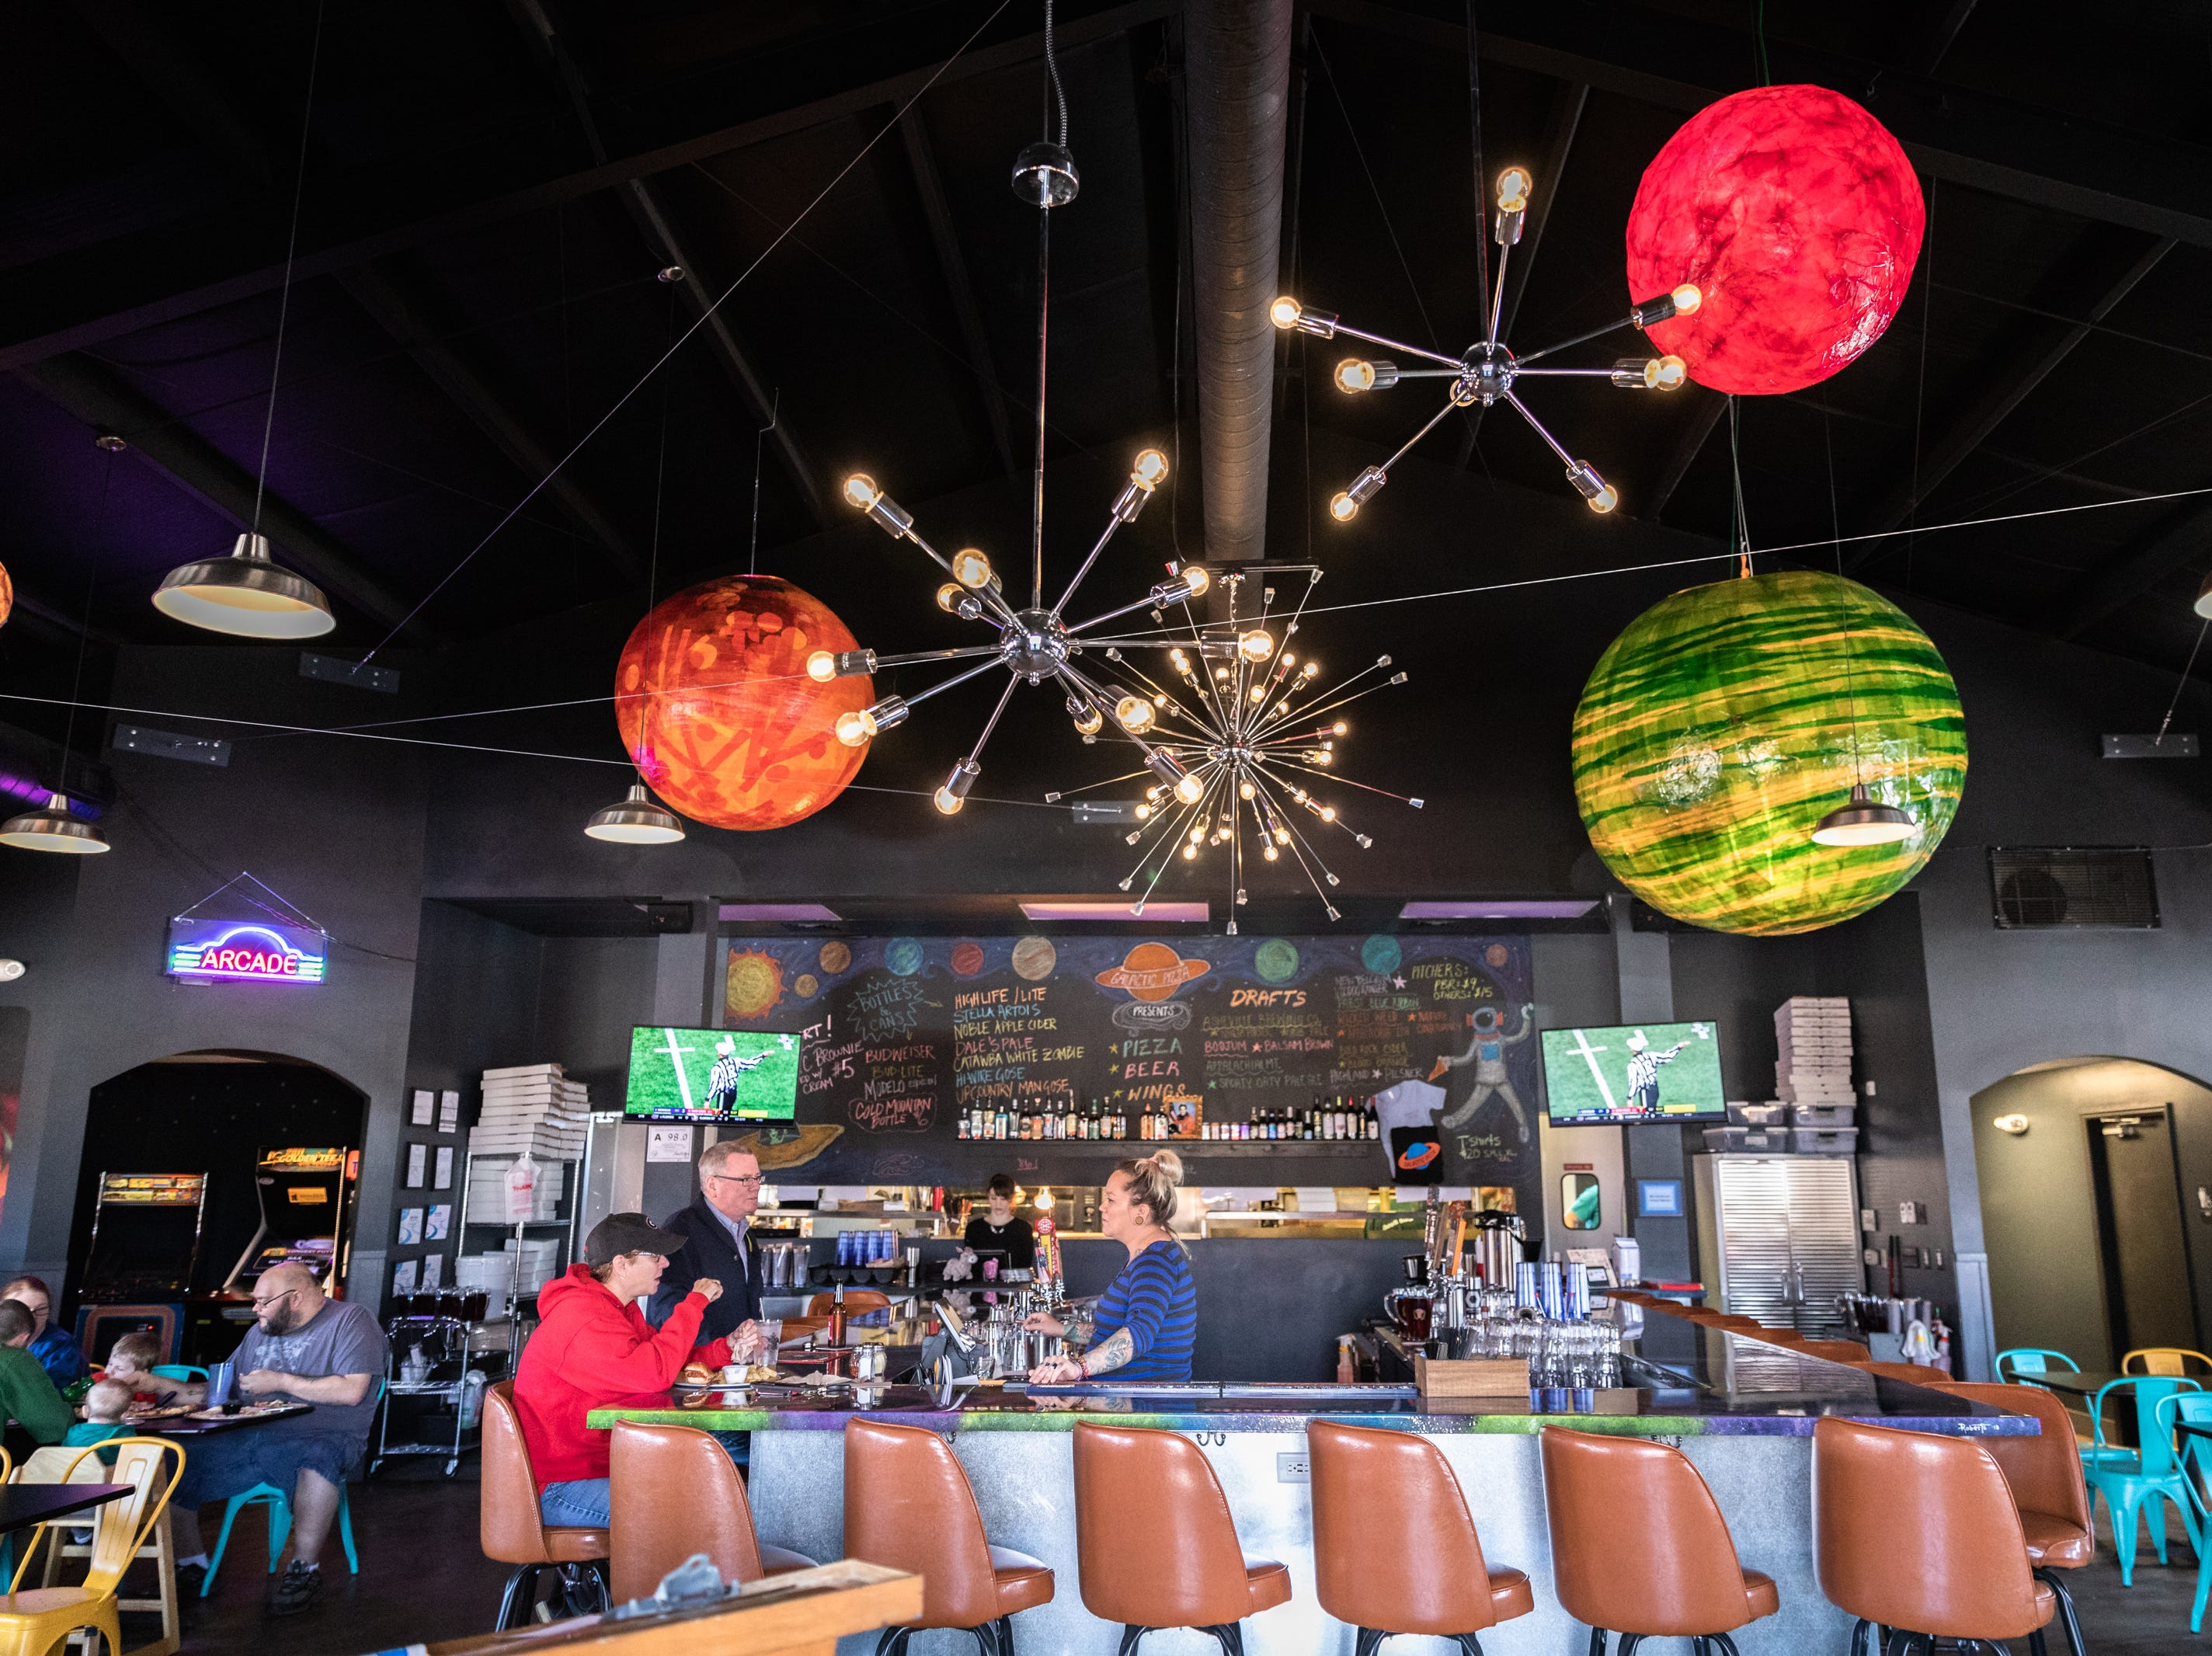 Galactic Pizza on Sardis Road in Candler.